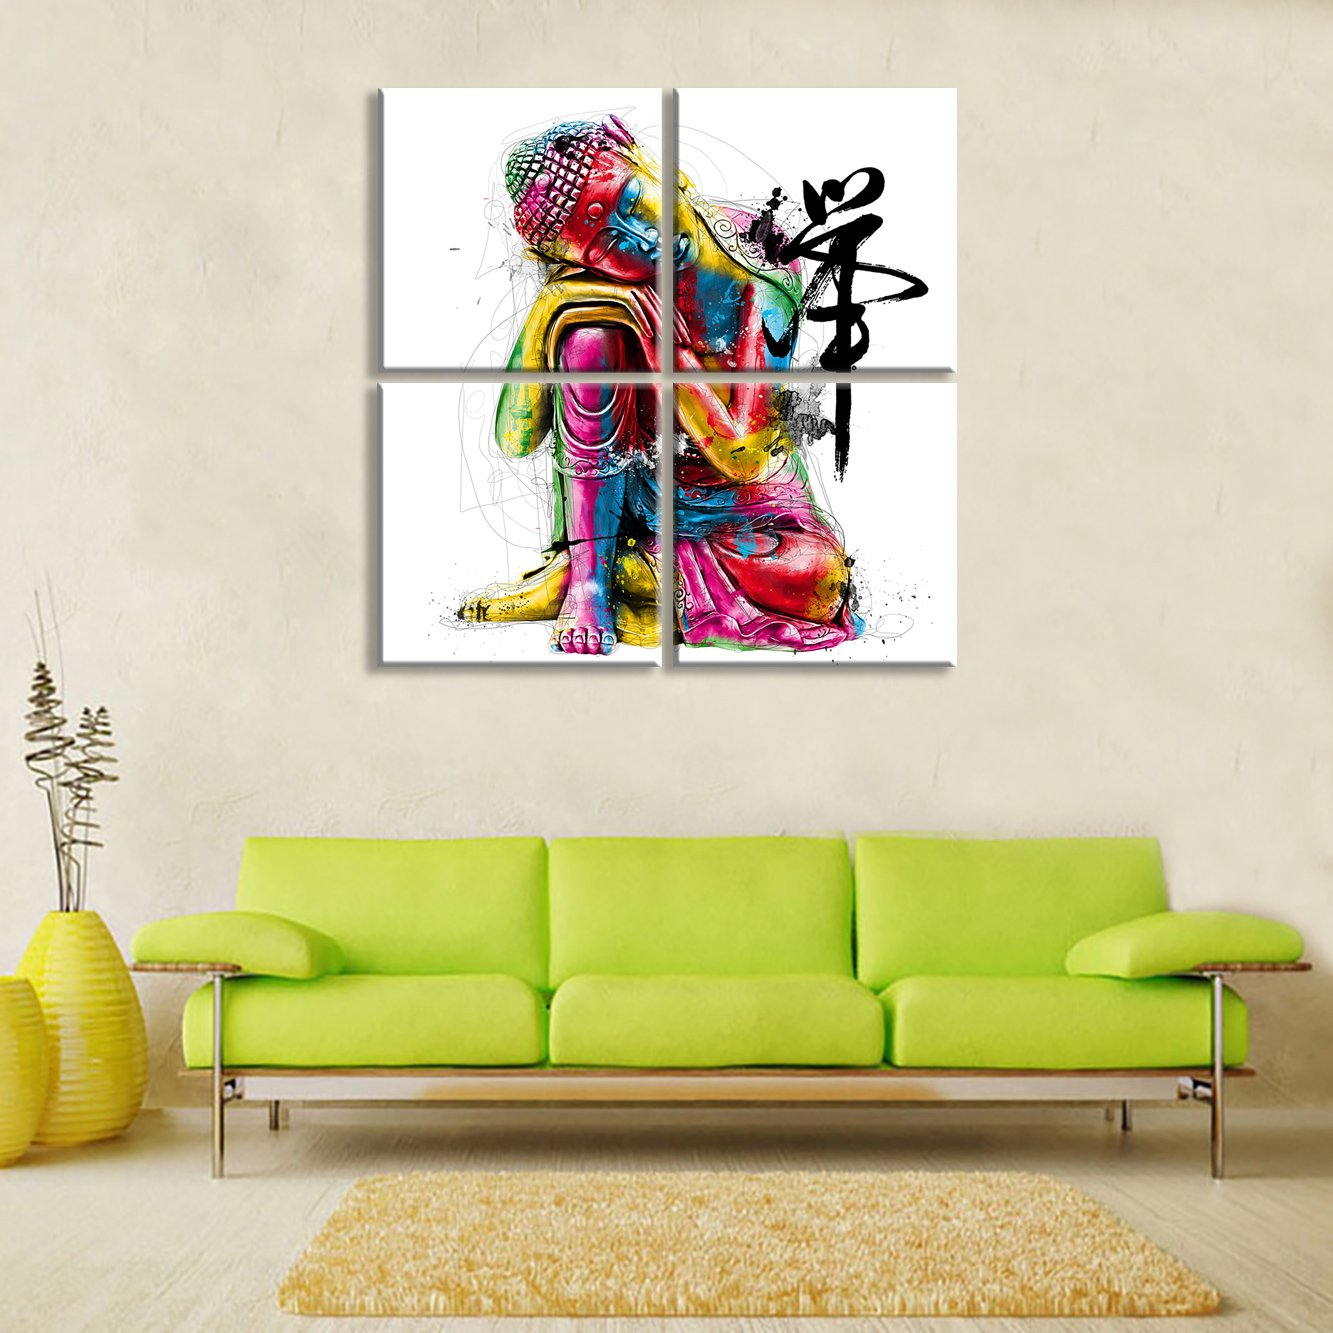 Amazon.com: Buddha Wall Art Canvas Prints Art Home Decor for Living ...